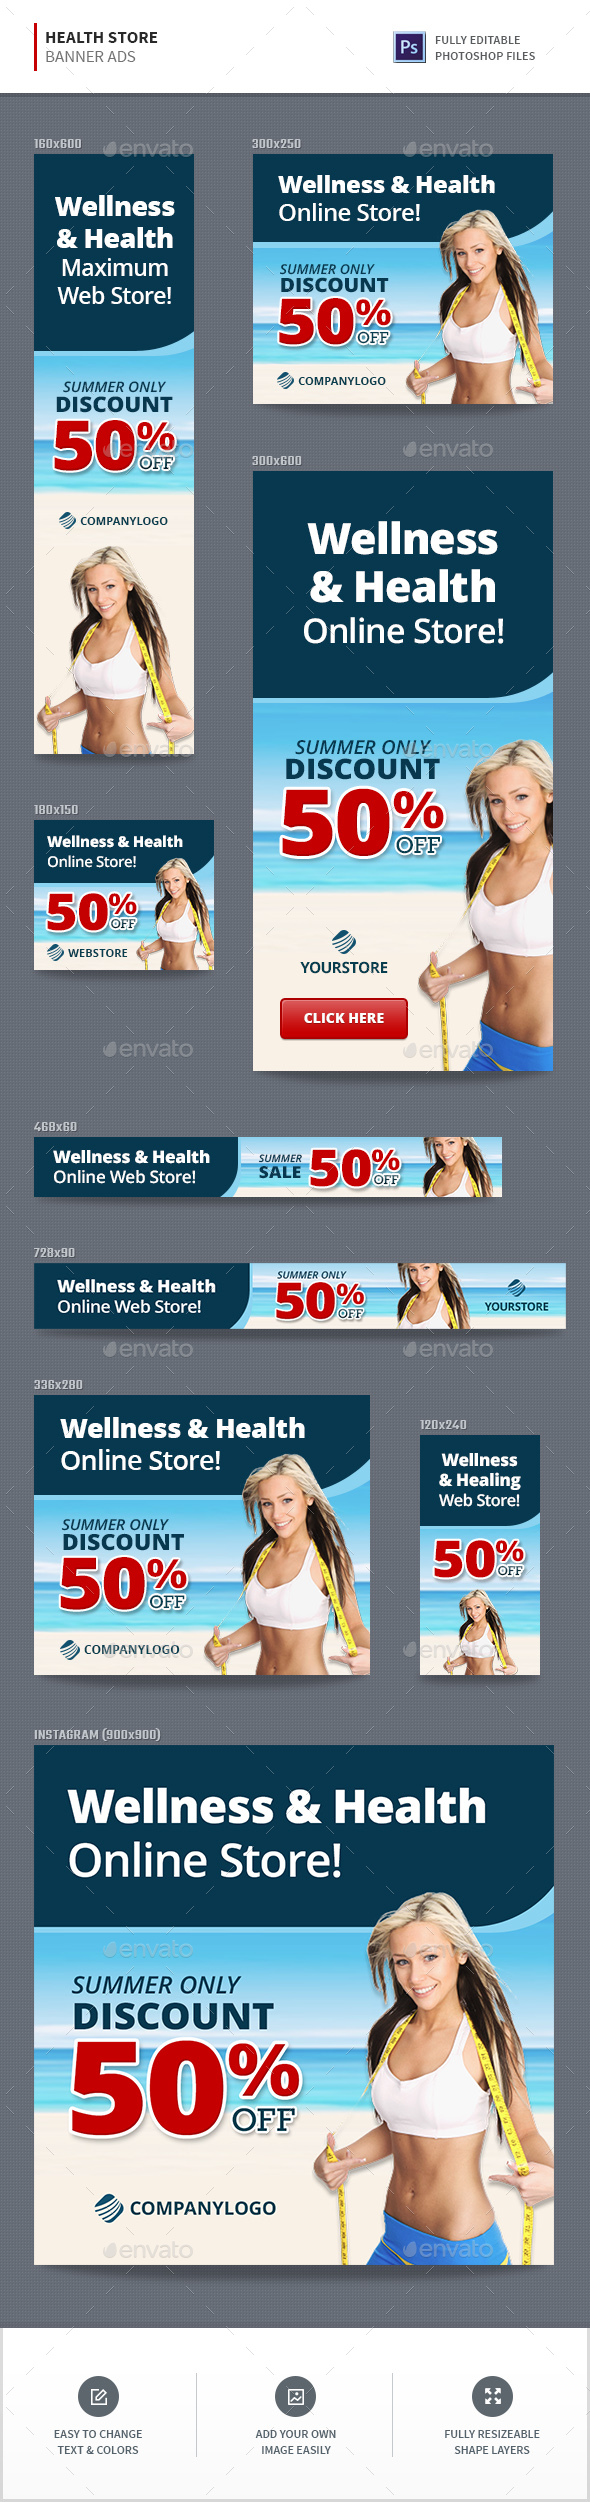 Health Store Banners - Banners & Ads Web Elements